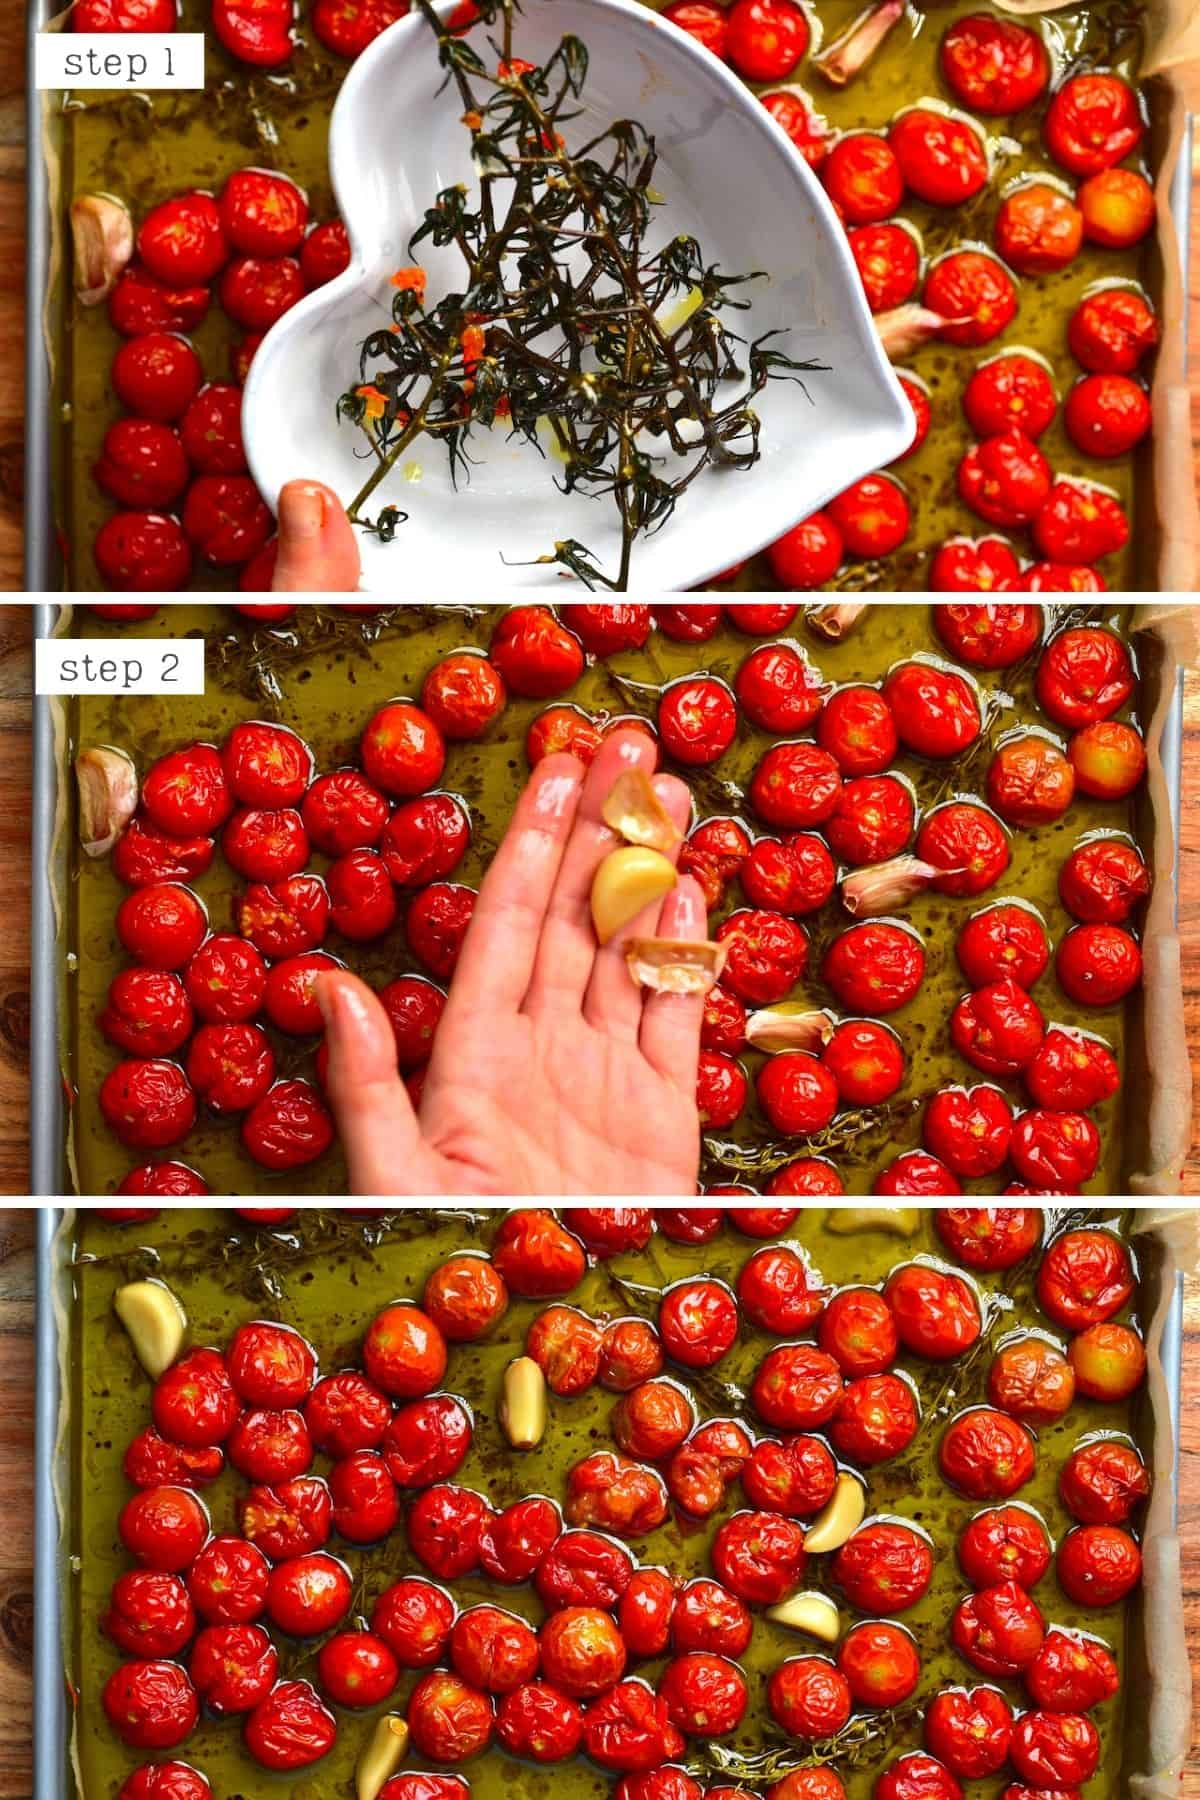 Steps for cleaning roasted tomatoes